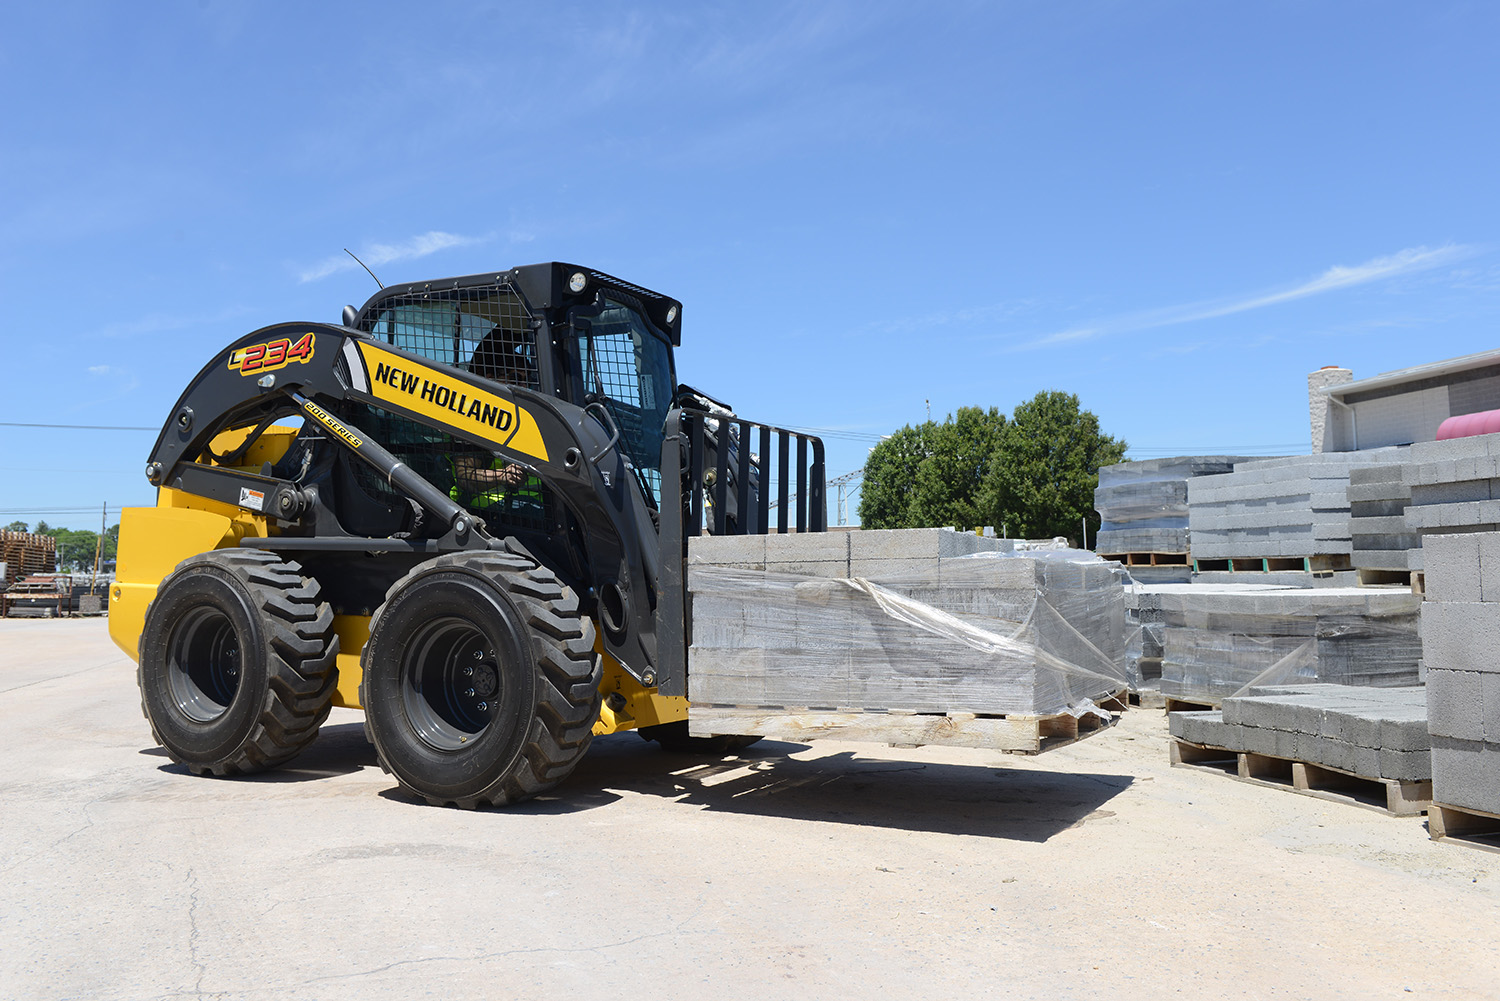 new holland construction introduces its newest most powerful skid steer loader to date tractopart. Black Bedroom Furniture Sets. Home Design Ideas